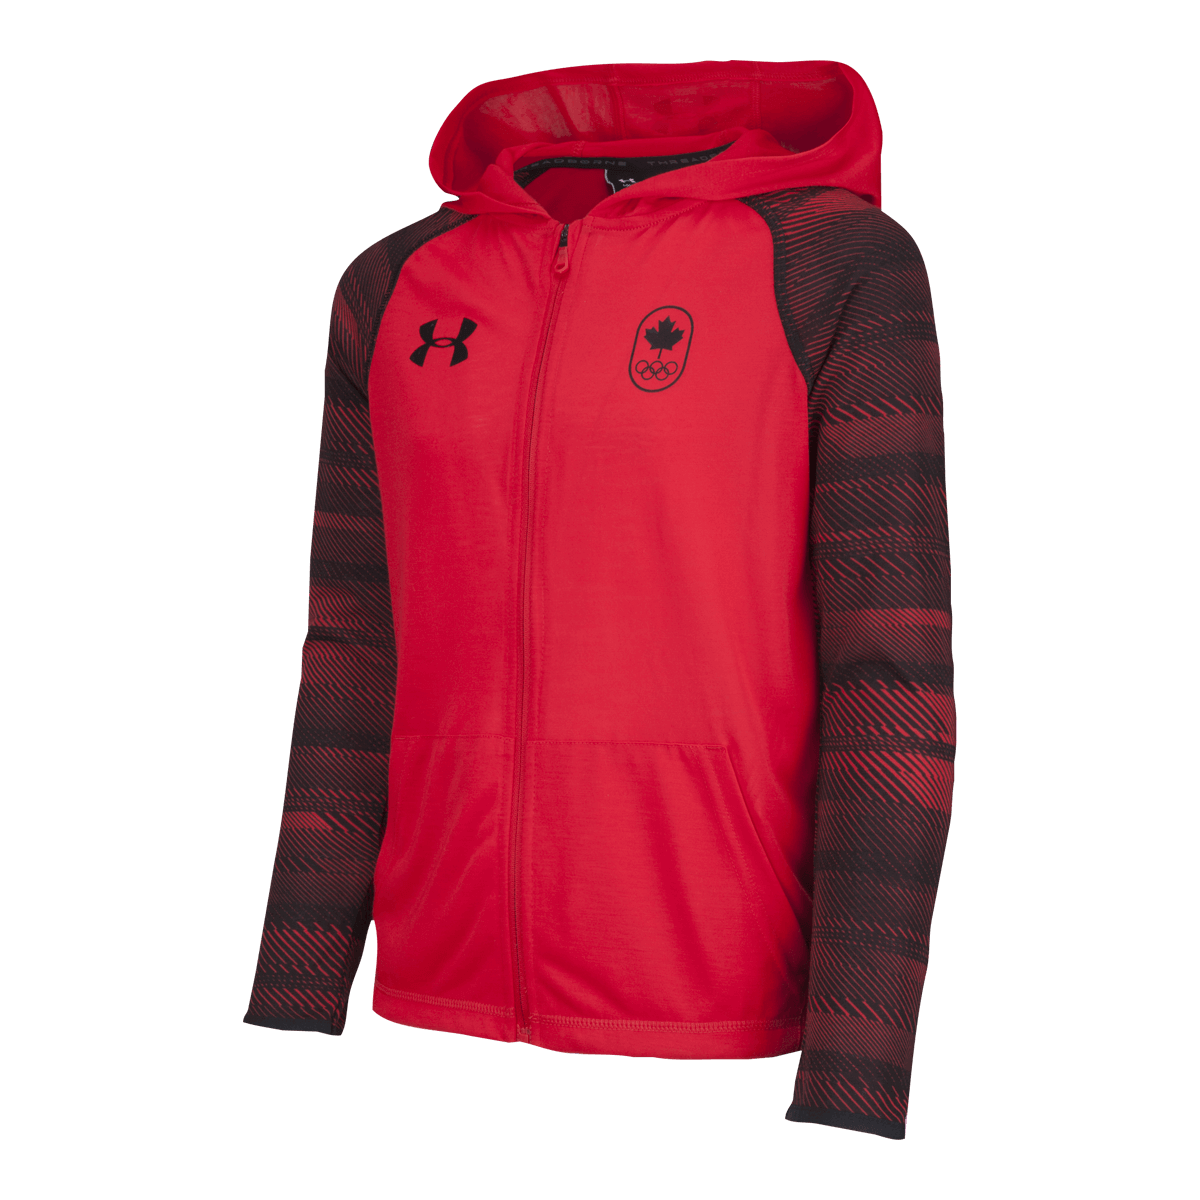 Kids' Under Armour 2018 Olympic Collection